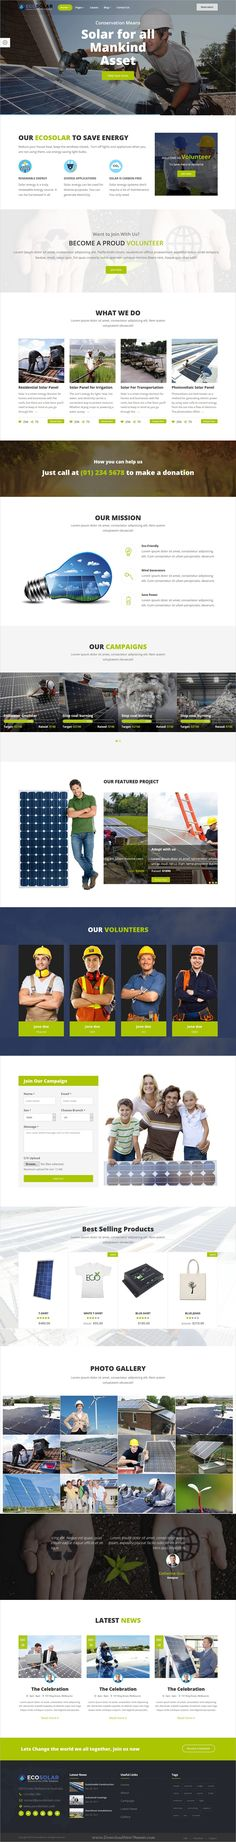 EcoSolar is a wonderful 2in1 responsive #HTML5 bootstrap template for #environment, recycling, solar and #renewable energy company websites download now➩  https://themeforest.net/item/ecosolar-nonprofit-environment-recyling-solar-html5-template/19393499?ref=Datasata